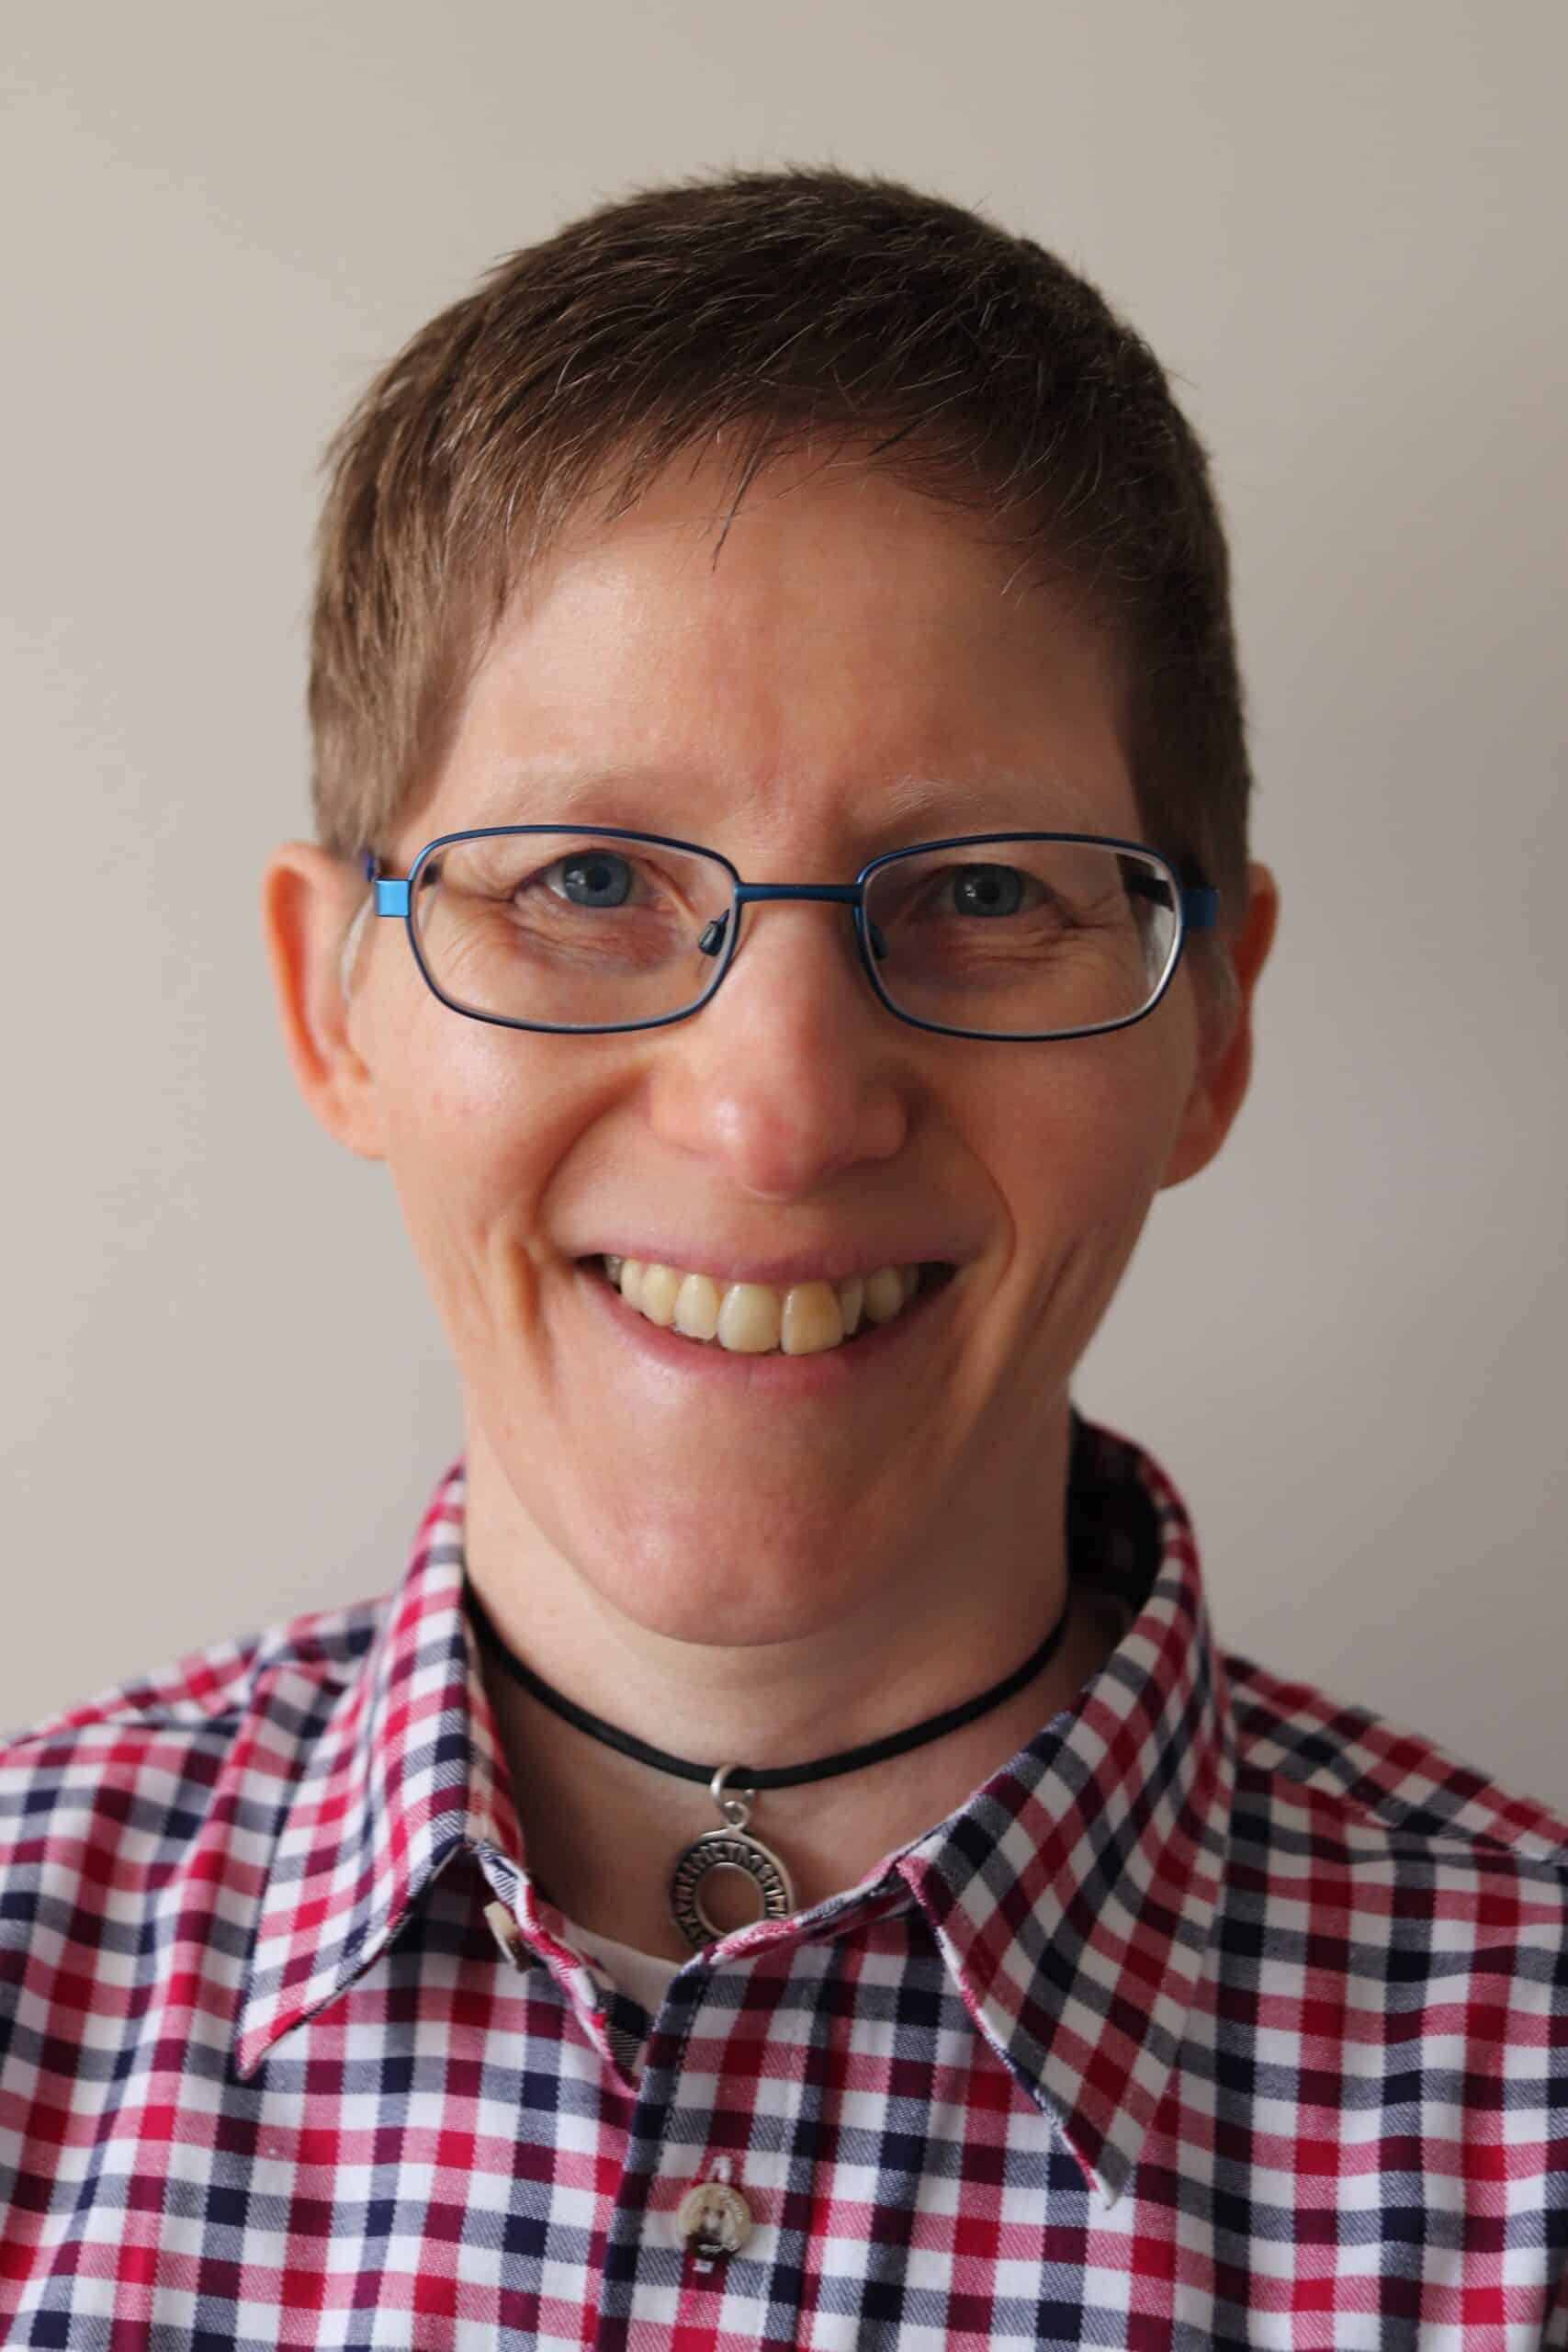 Luan Baines-Ball Counselling and psychotherapy Luan has short light brown hair and is wearing blue glasses and a navy red white check shirt